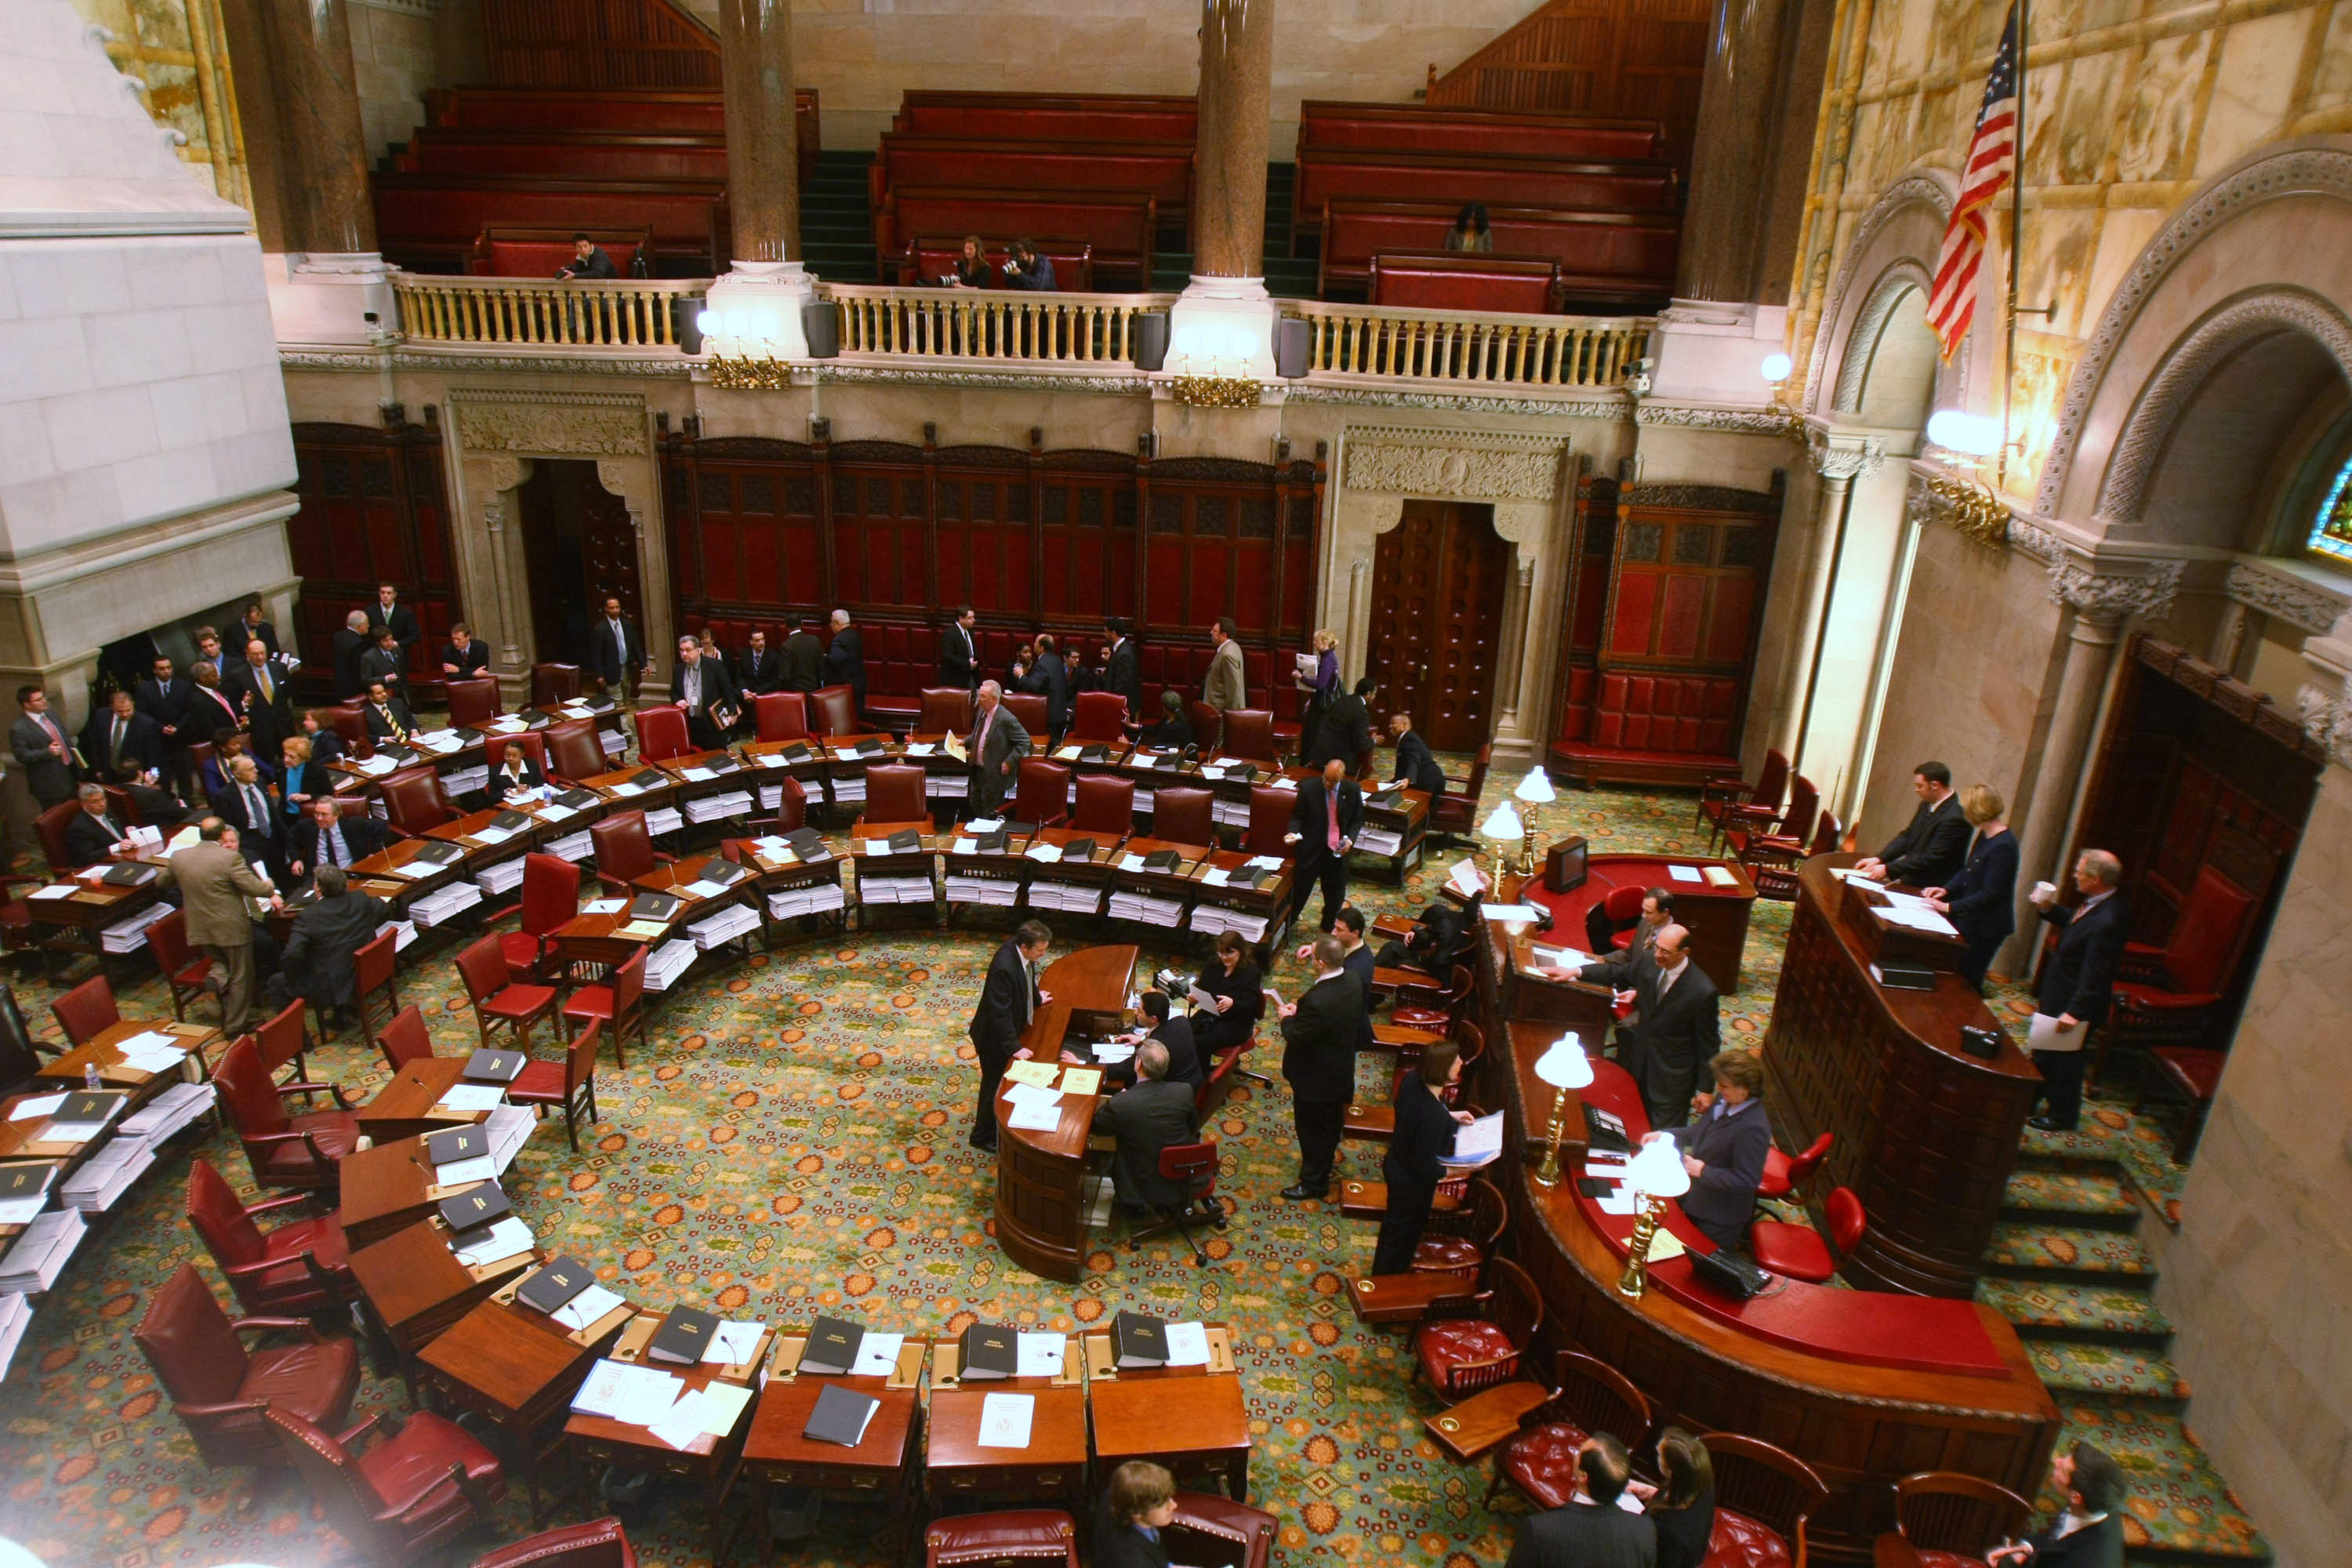 The Senate floor is seen inside the State Capitol in Albany, New York. (Photo by Daniel Barry/Getty Images)